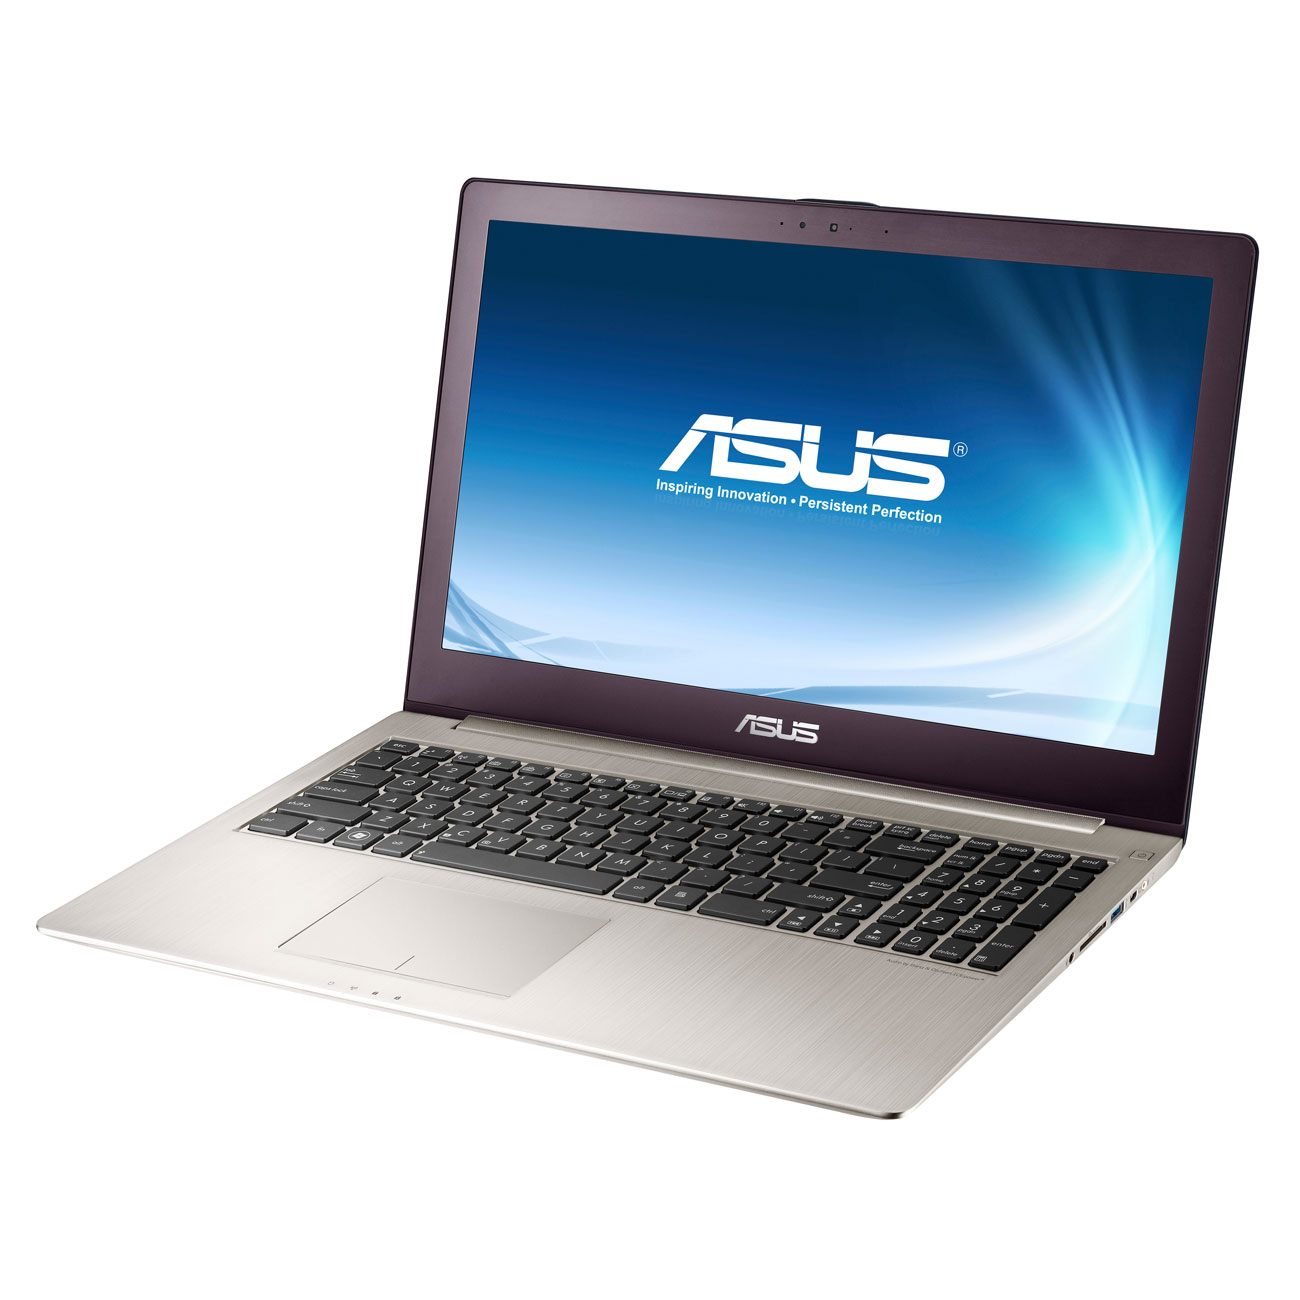 "PC portable ASUS UX51VZ-CN079P Intel Core i7-3632QM 6 Go SSD 128 Go + HDD 500 Go 15.6"" LED NVIDIA GeForce GT 650M Wi-Fi N/Bluetooth Webcam Windows 8 Pro 64 bits (garantie constructeur 2 ans)"